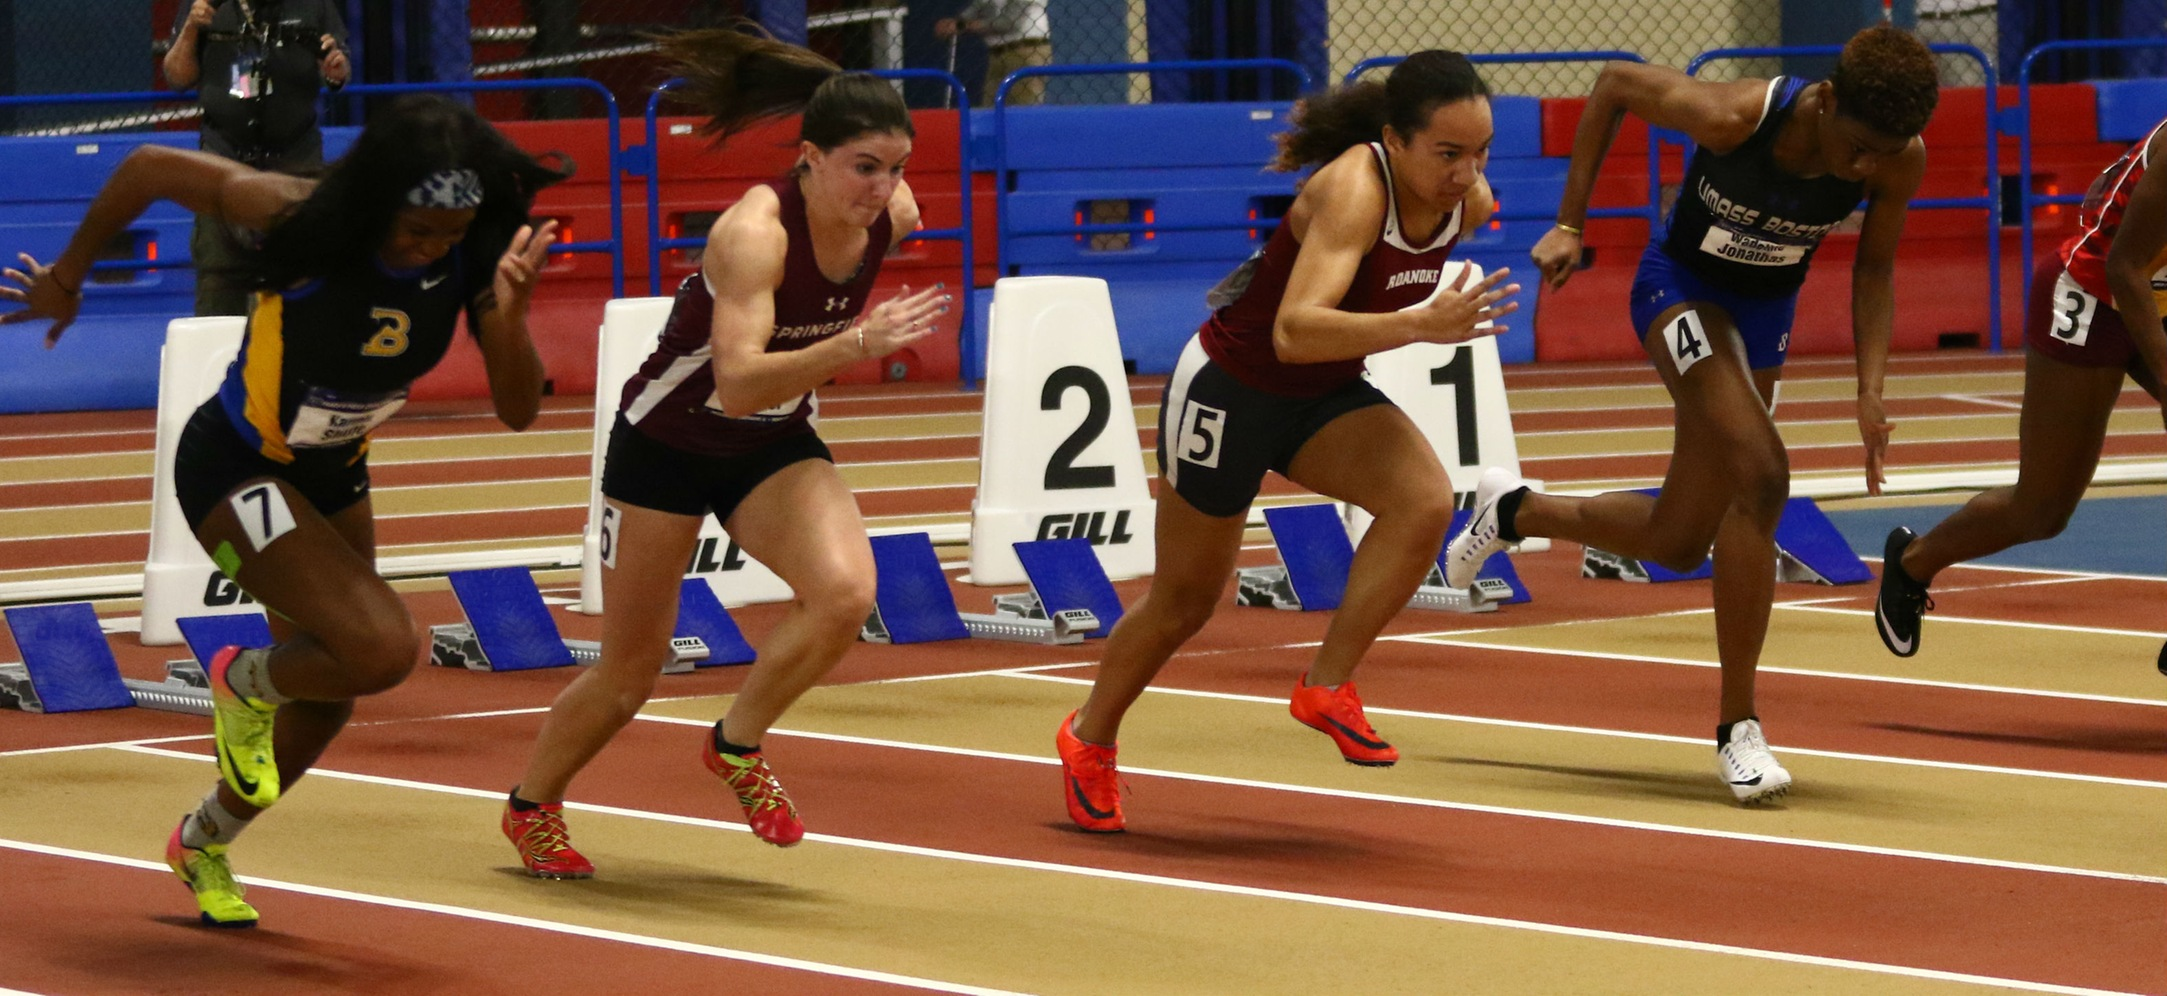 Luscier Earns Third-Consecutive All-America Honor in 60 Meter Dash at NCAA Division III Indoor Track and Field Championships